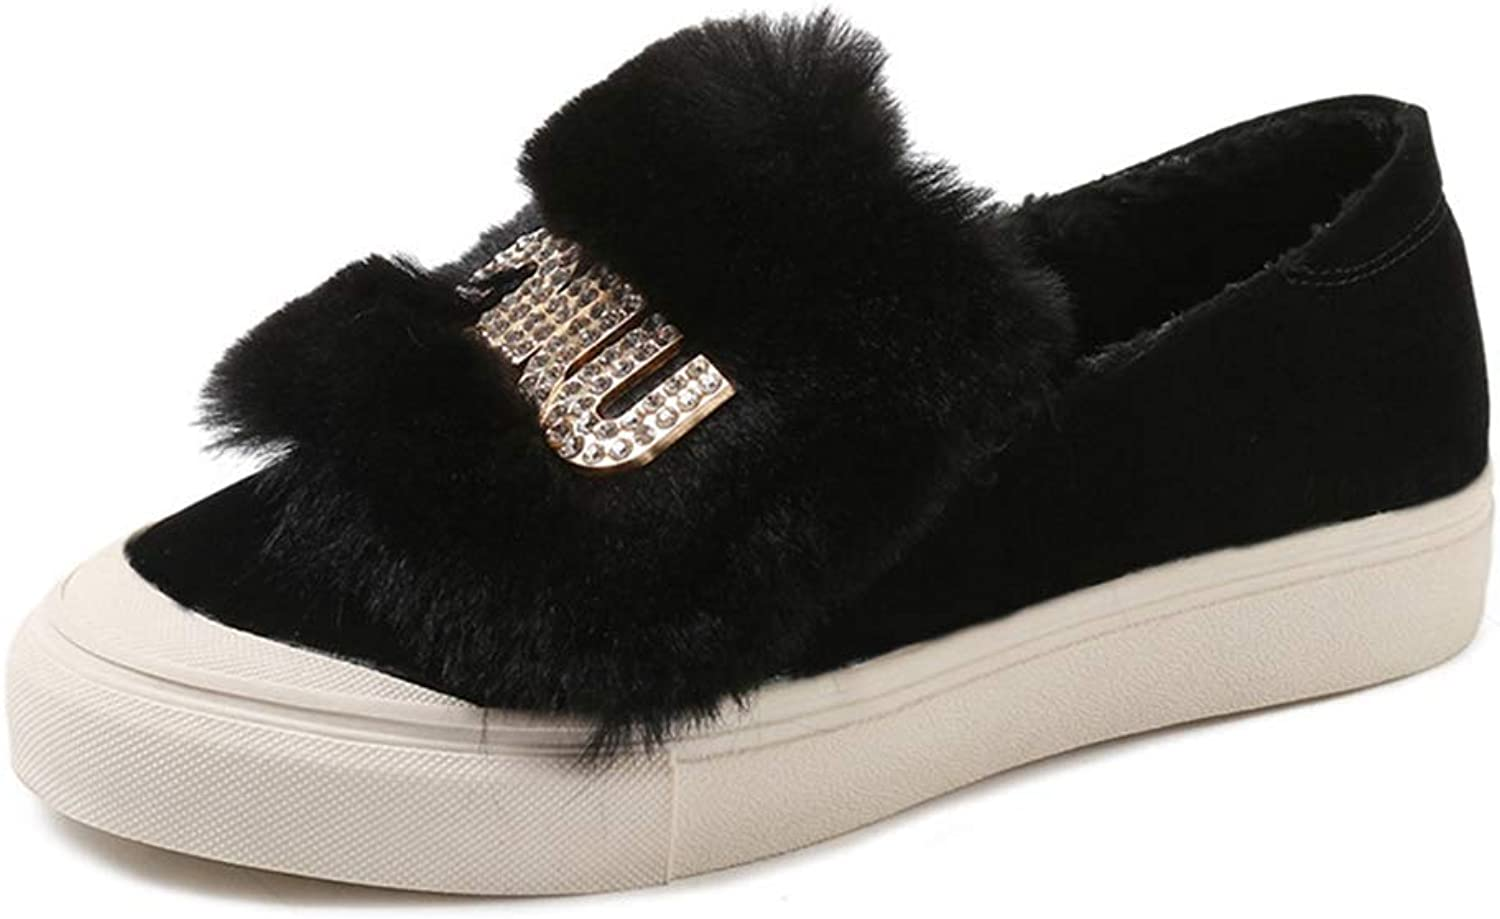 August Jim Flats shoes for Women Winter,Slip-on Round Toe Warm Fur Flats Loafers